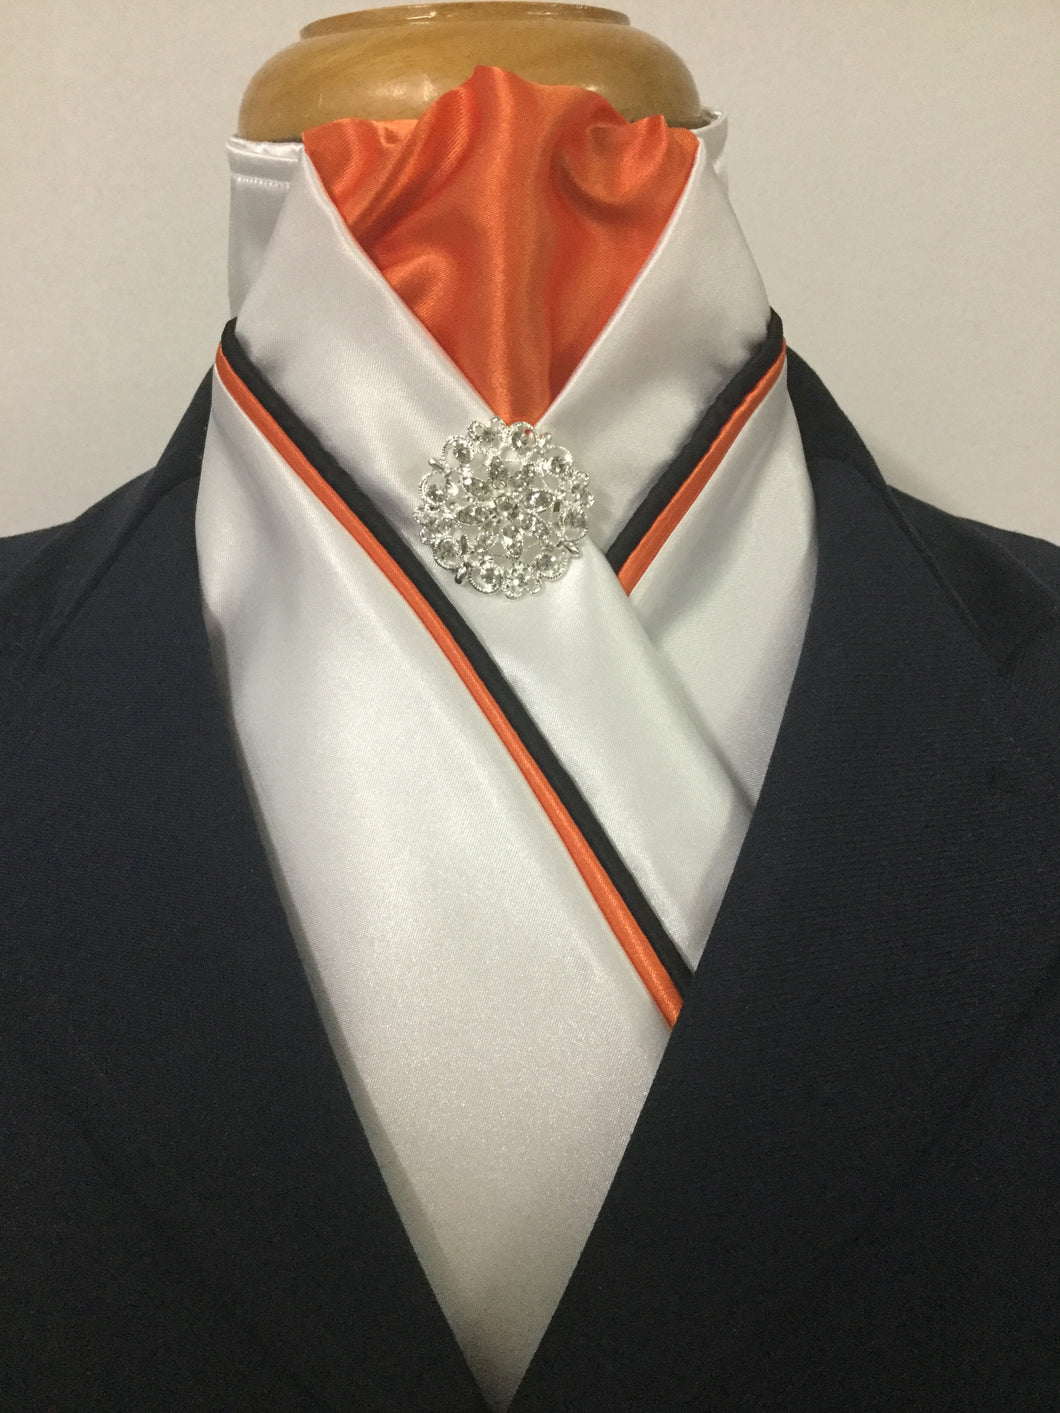 HHD White Satin Custom Pretied Stock Tie in Orange & Black